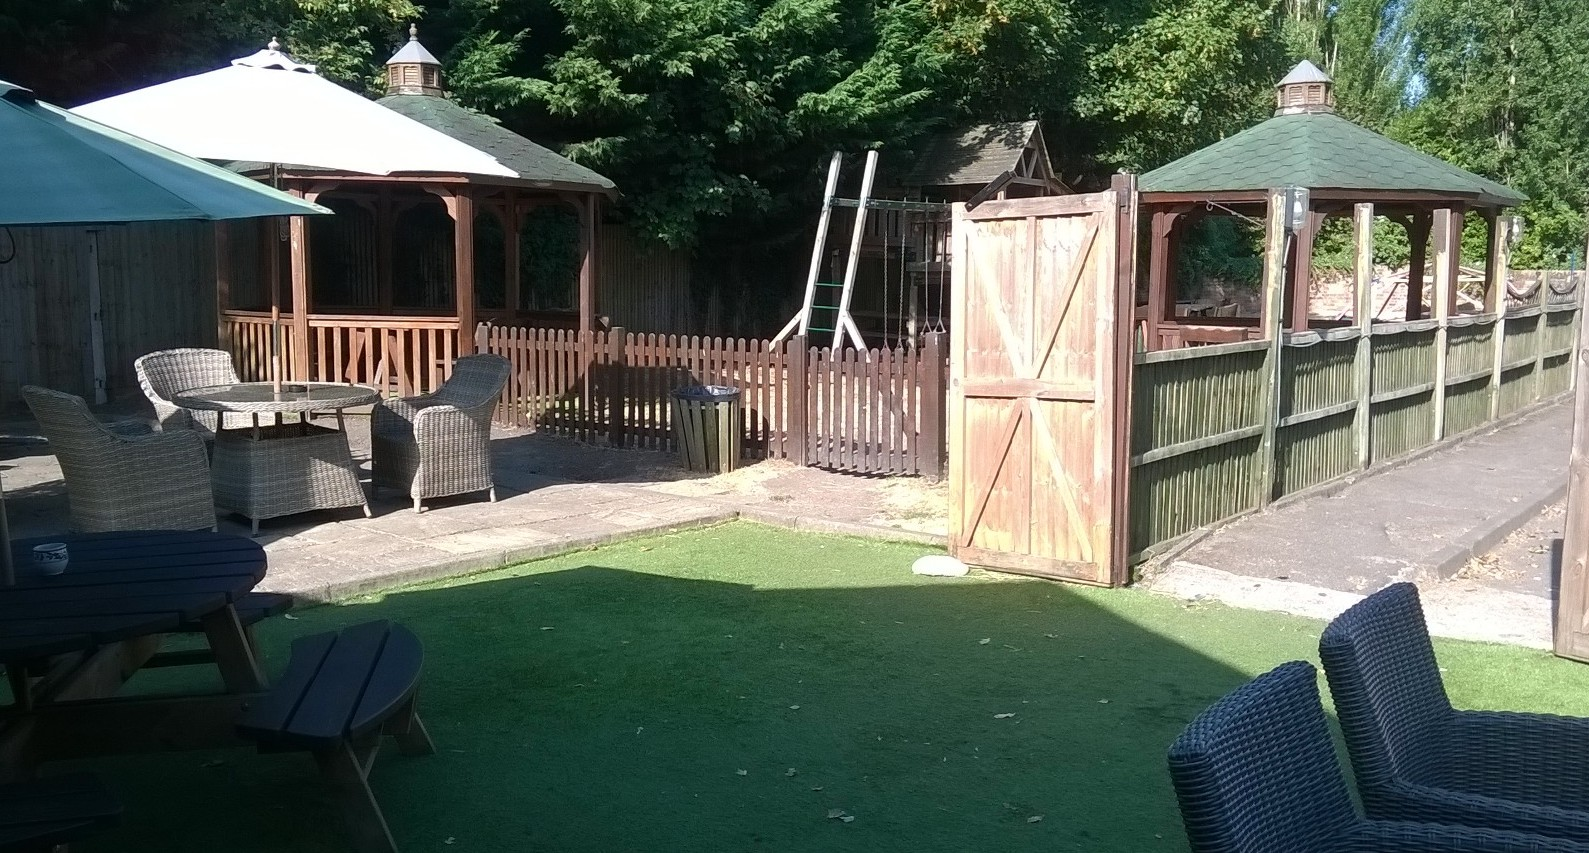 Red Lion Pub Thorpe Garden area 2